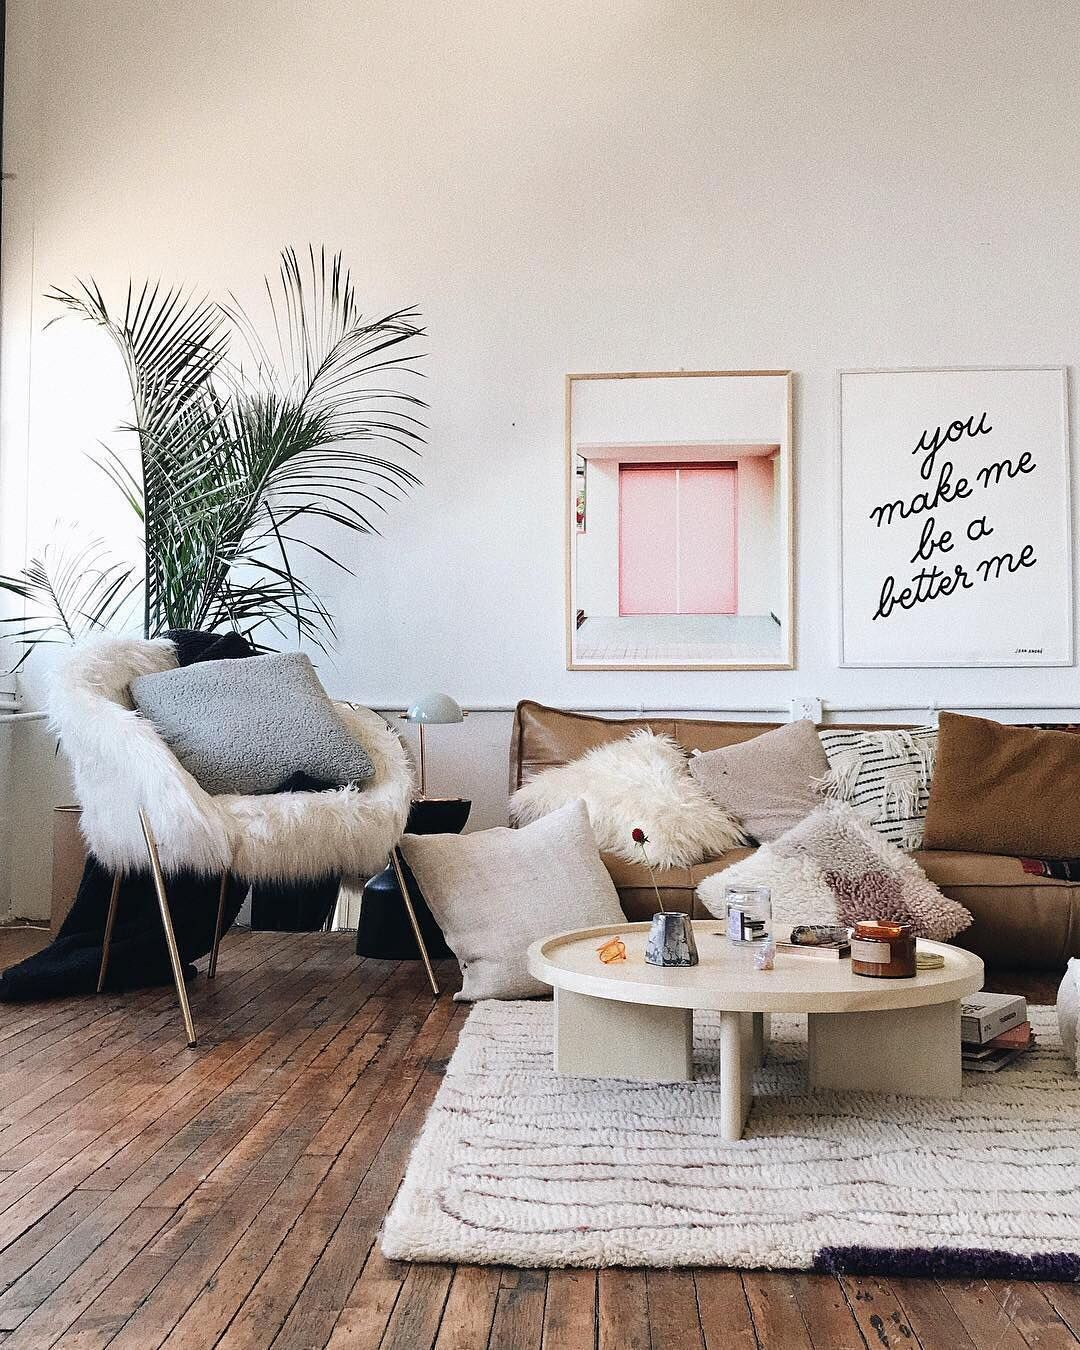 Bon Urban Outfitters Talia White Fuzzy Chair Cozy Living Room Ideas, Home Decor